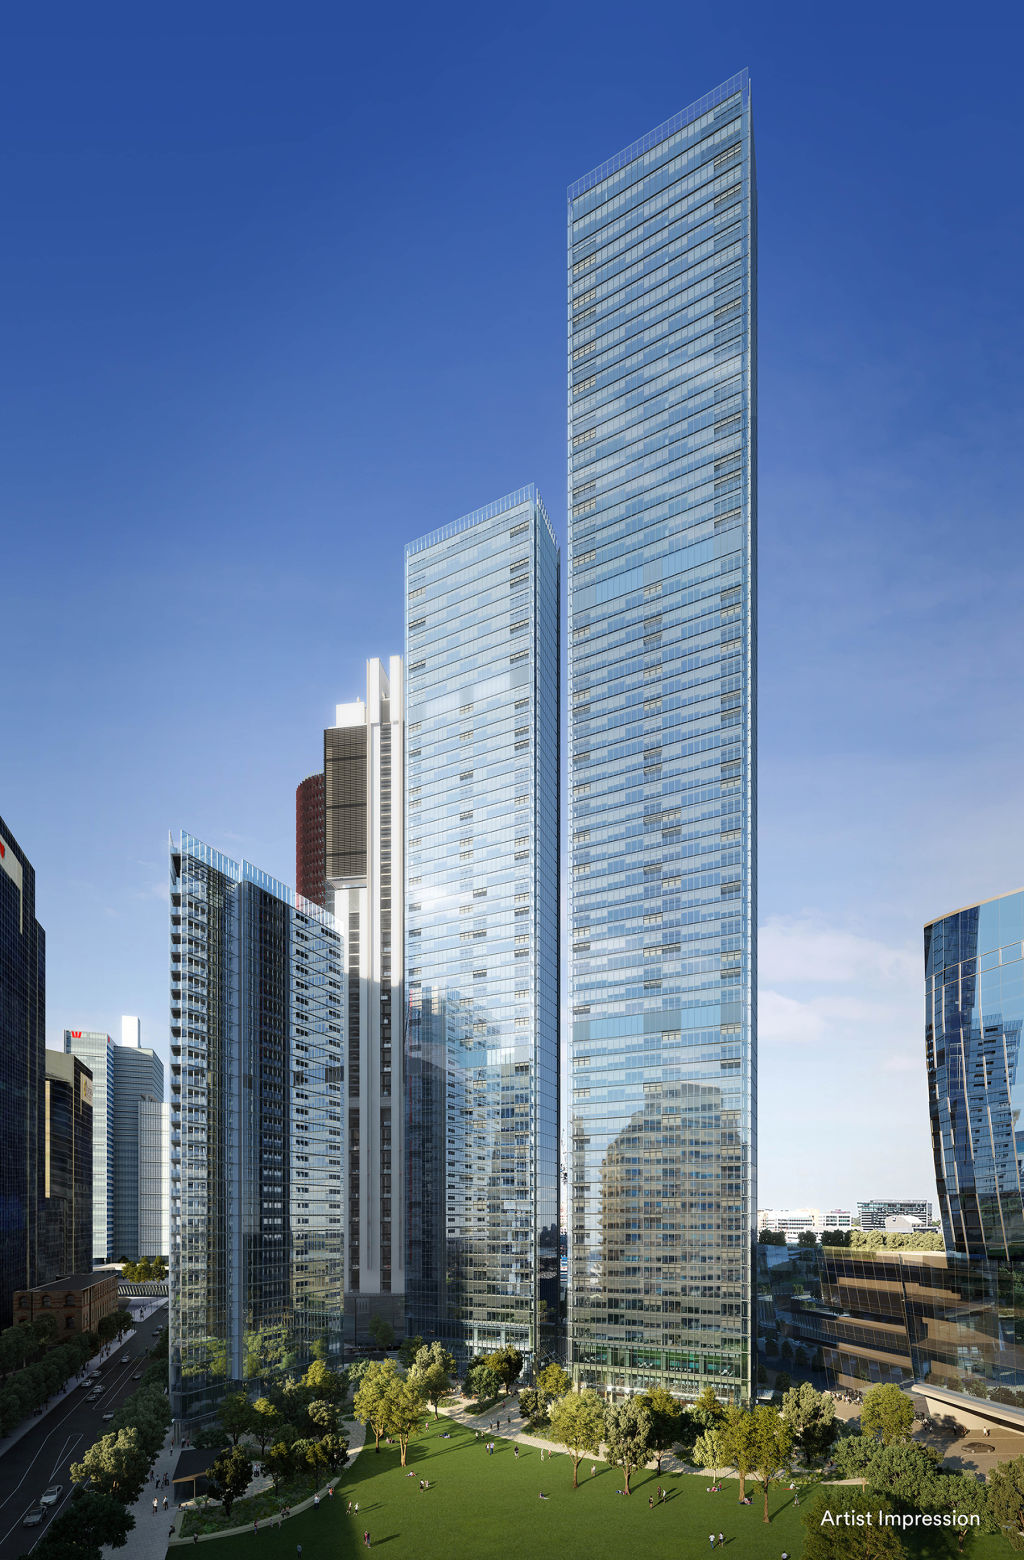 The apartment is nestled in the glitzy harbour-side precinct of Barangaroo.